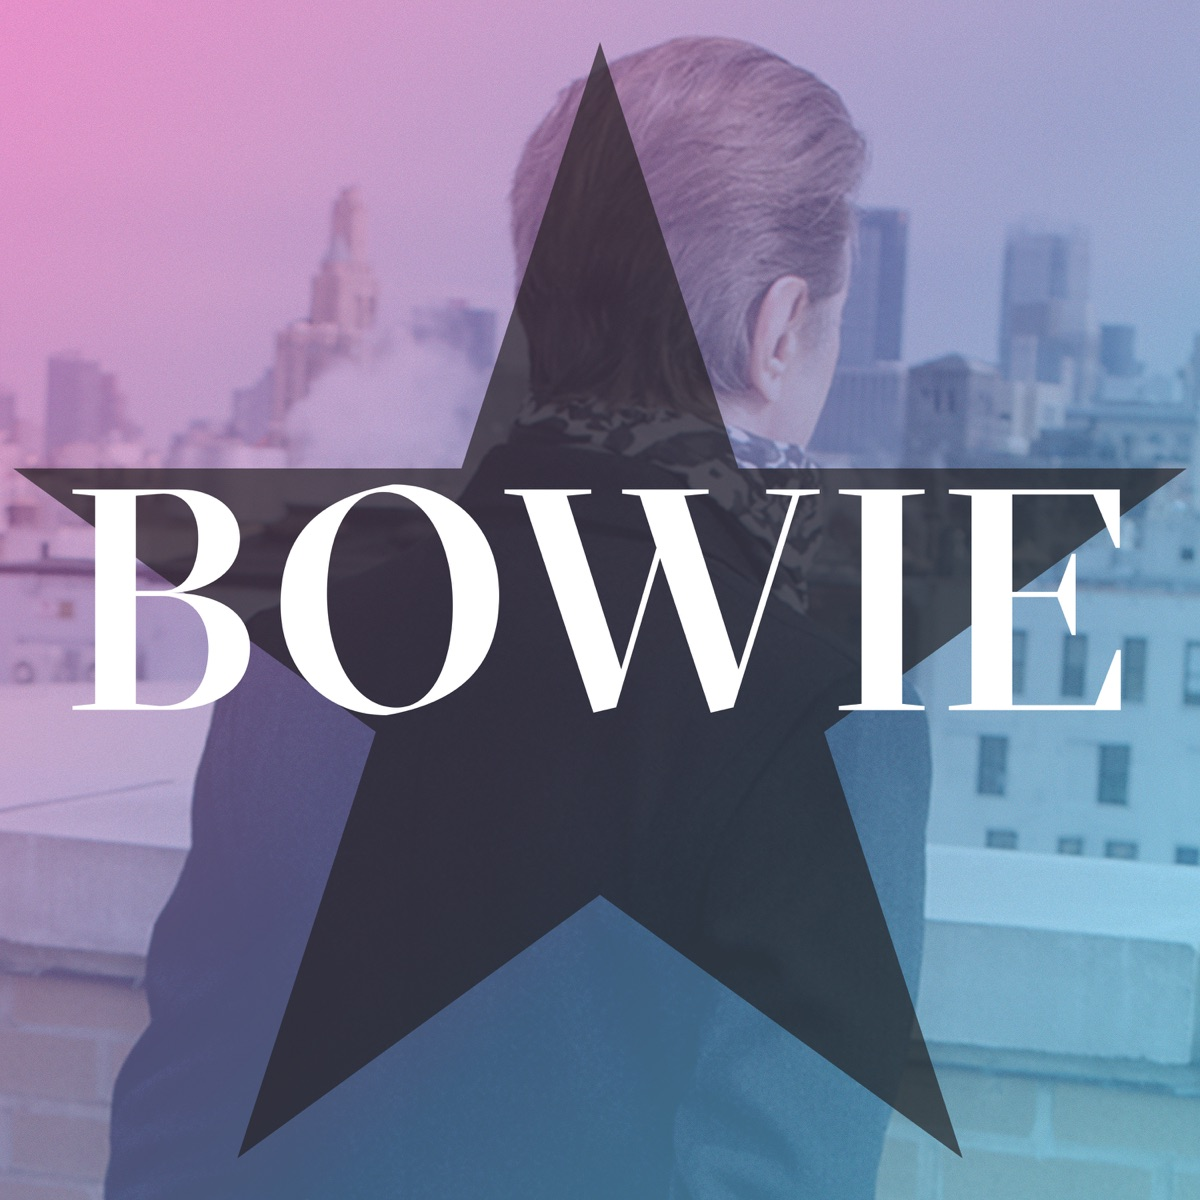 No Plan - EP David Bowie CD cover